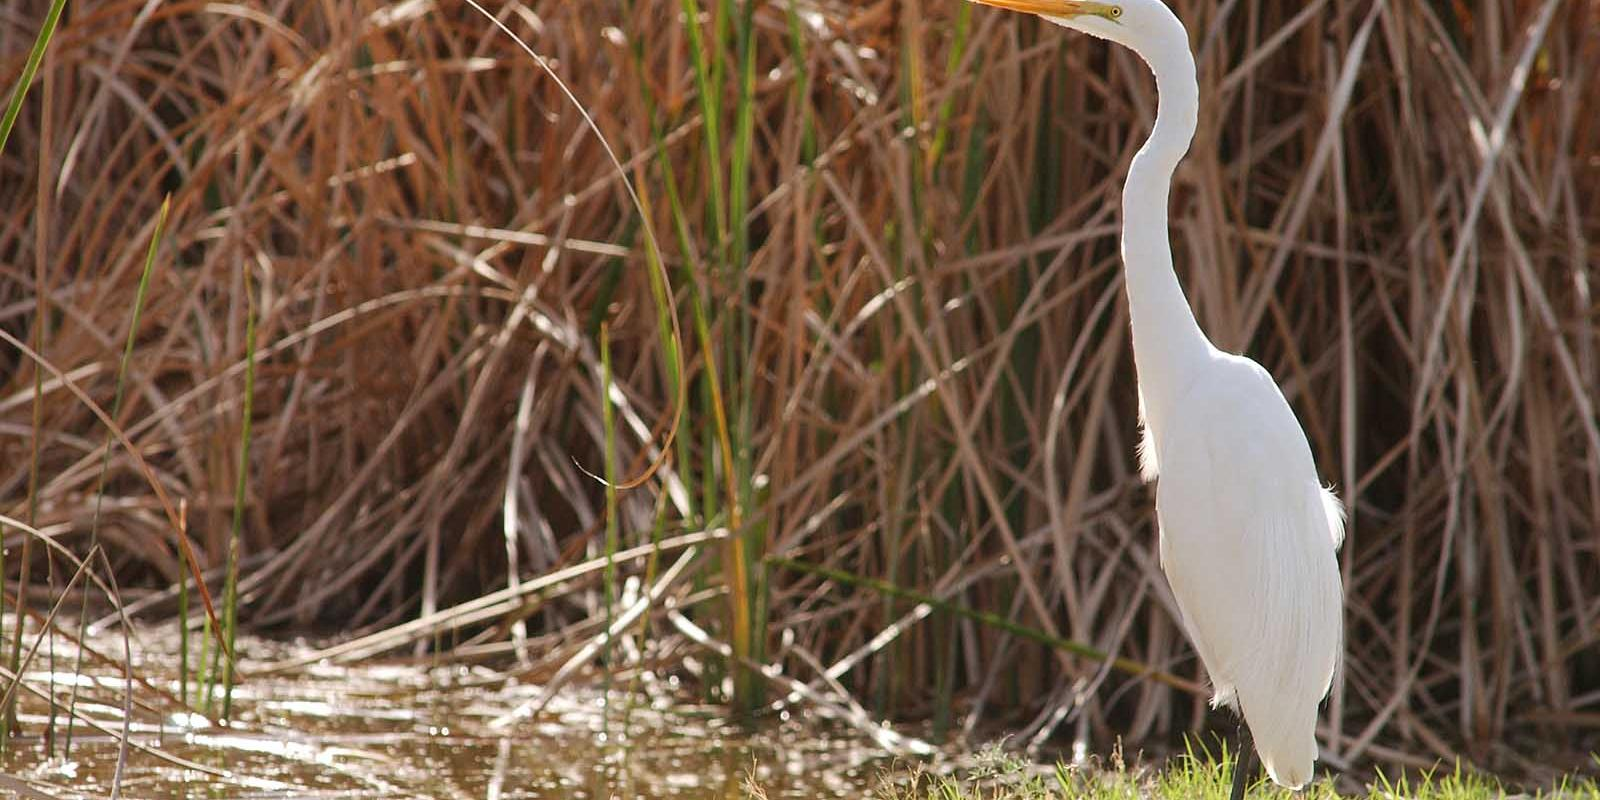 A heron visits the wildlife preserve at the Lyle Center